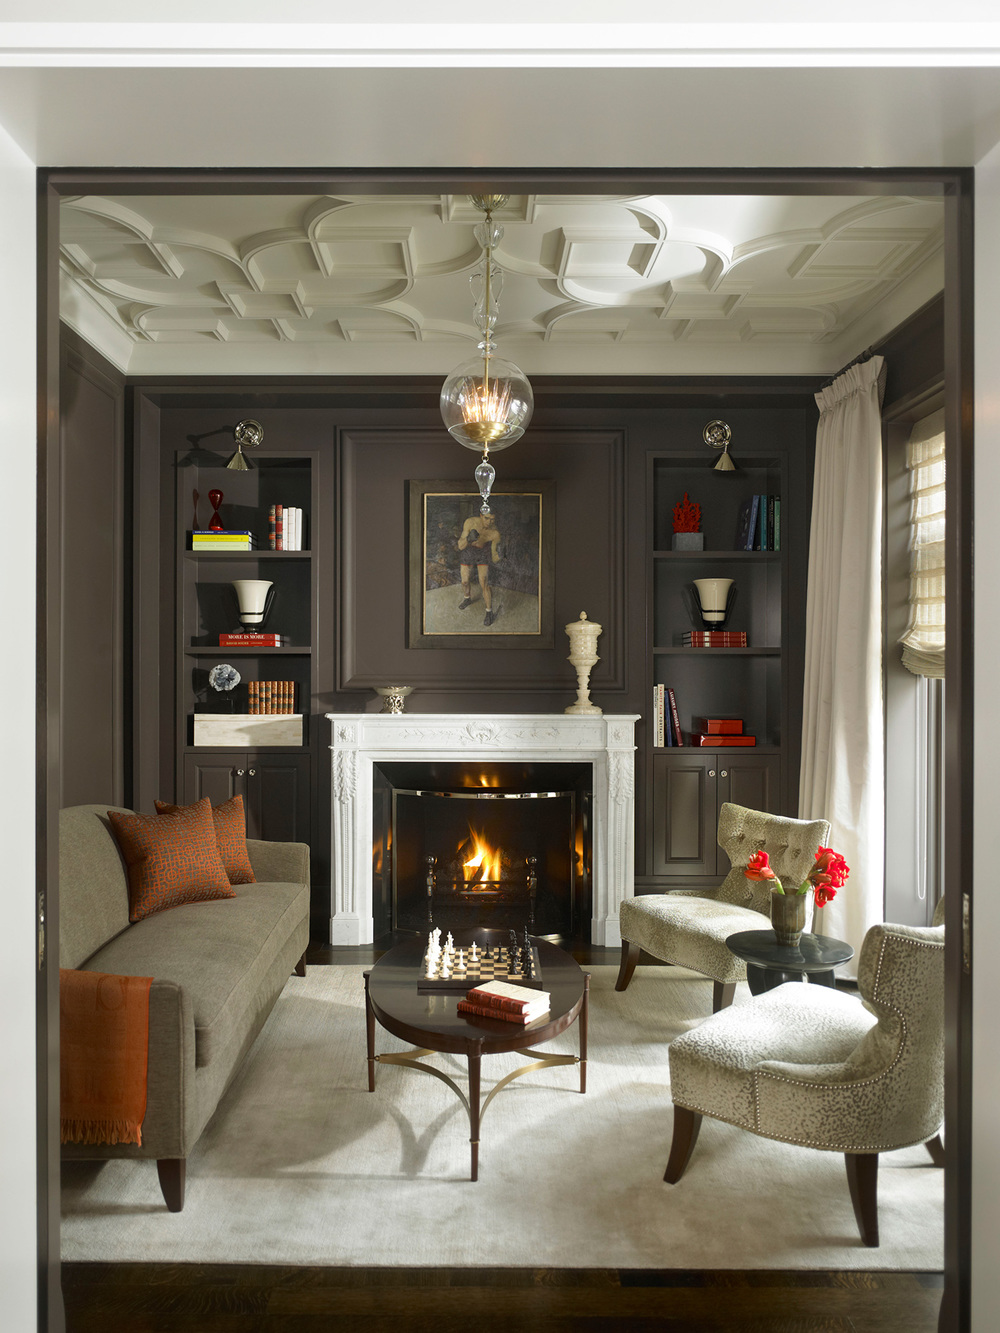 1_michael_abrams_interior_design_chicago_Astor_4.jpg